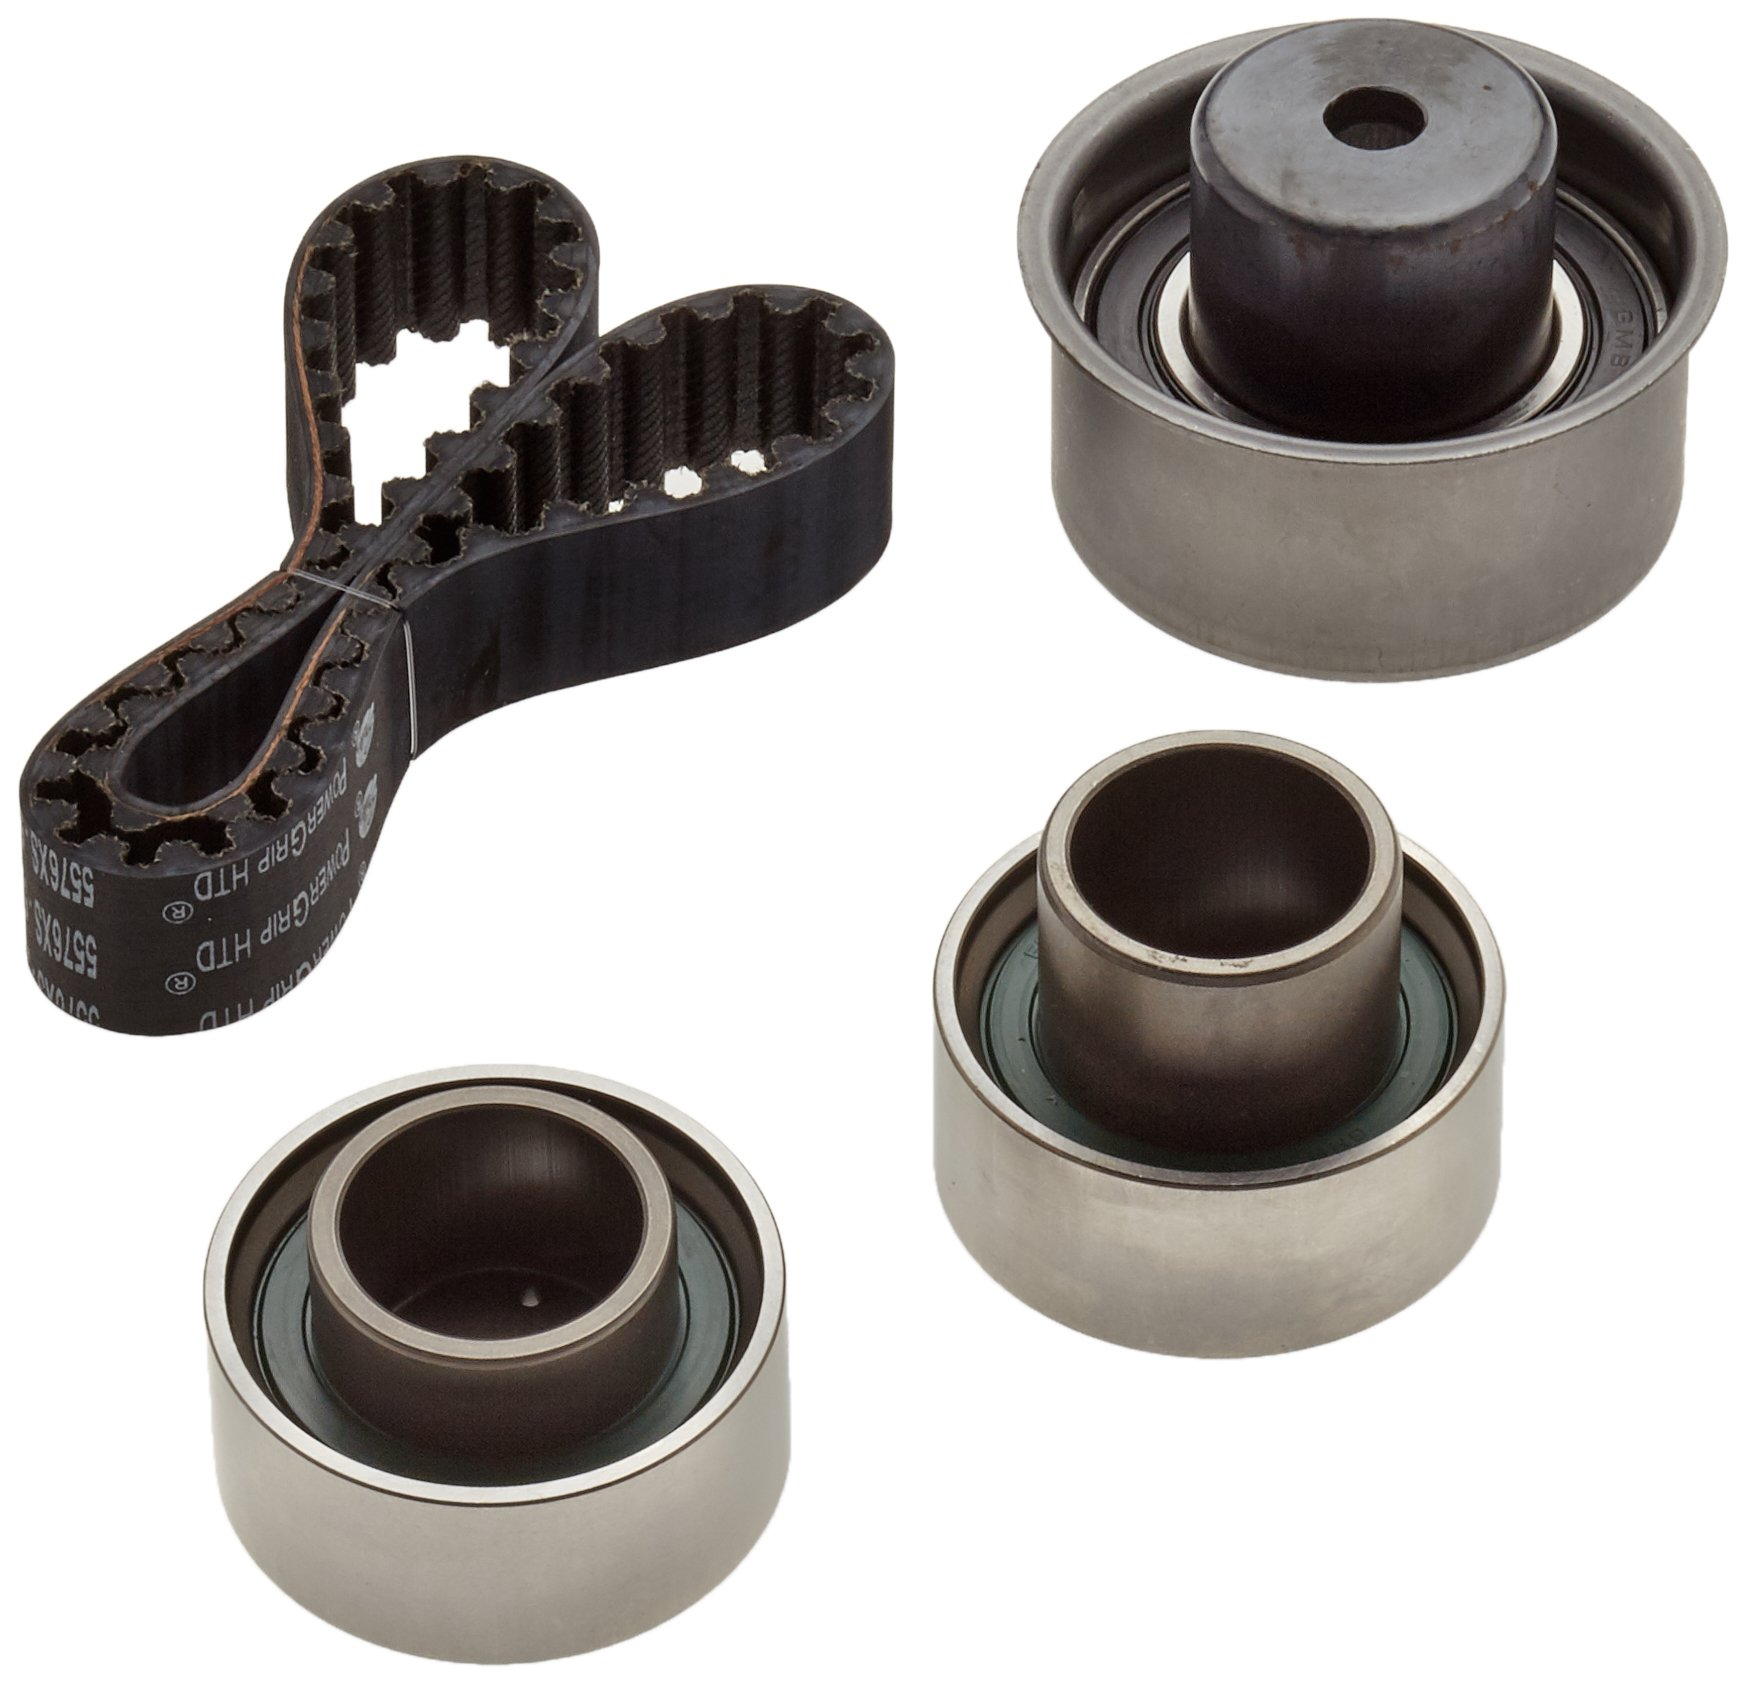 IPS Parts j|itk-6 K01 Kit Verteilung von Ips Parts